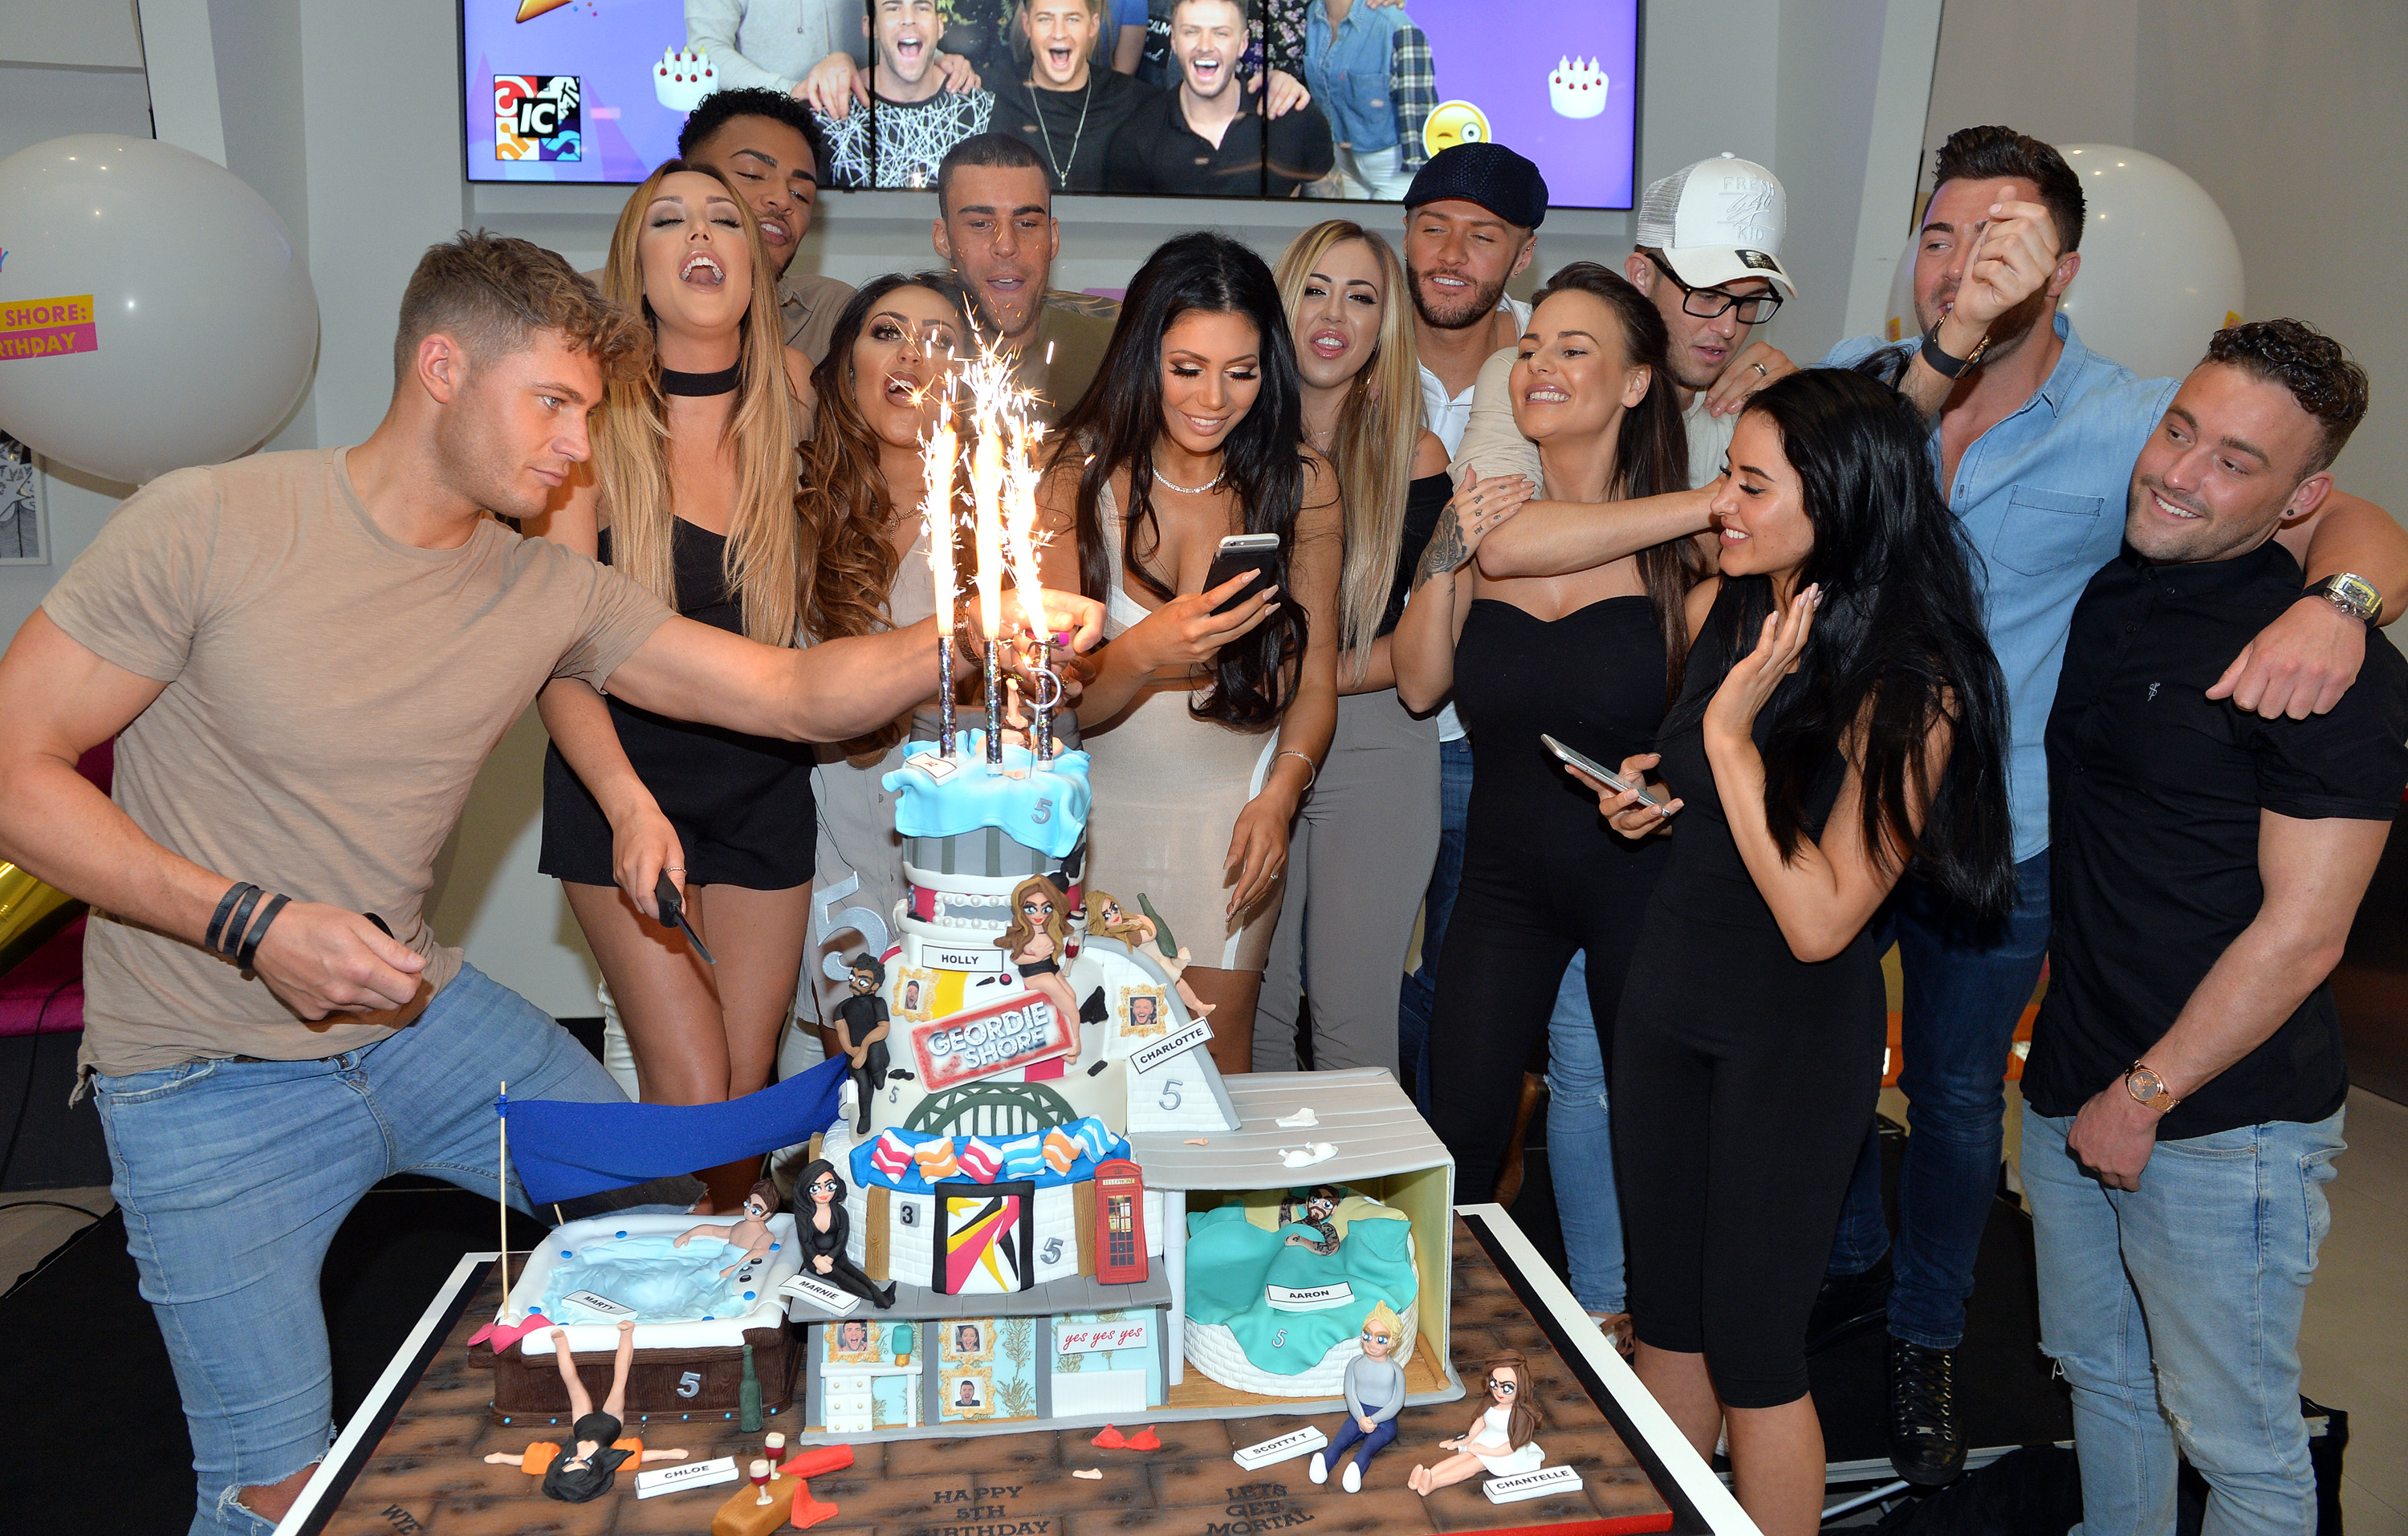 LONDON, ENGLAND - MAY 24: Charlotte Crosby, Holly Hagan, Chloe Etherington, Chantelle Connelly, Marnie Simpson, Sophie Kasaei, Aaron Chalmers, Nathan Henry, Scott Timlin, Marty McKenna, James Tindale and Dan Thomas-Tuck of tGeordie Shore celebrate their fifth birthday at MTV London on May 24, 2016 in London, England. (Photo by Anthony Harvey/Getty Images) *** Local Caption *** Charlotte Crosby; Holly Hagan; Chloe Etherington; Chantelle Connelly; Marnie Simpson; Sophie Kasaei; Aaron Chalmers; Nathan Henry; Scott Timlin; Marty McKenna; James Tindale; Dan Thomas-Tuck